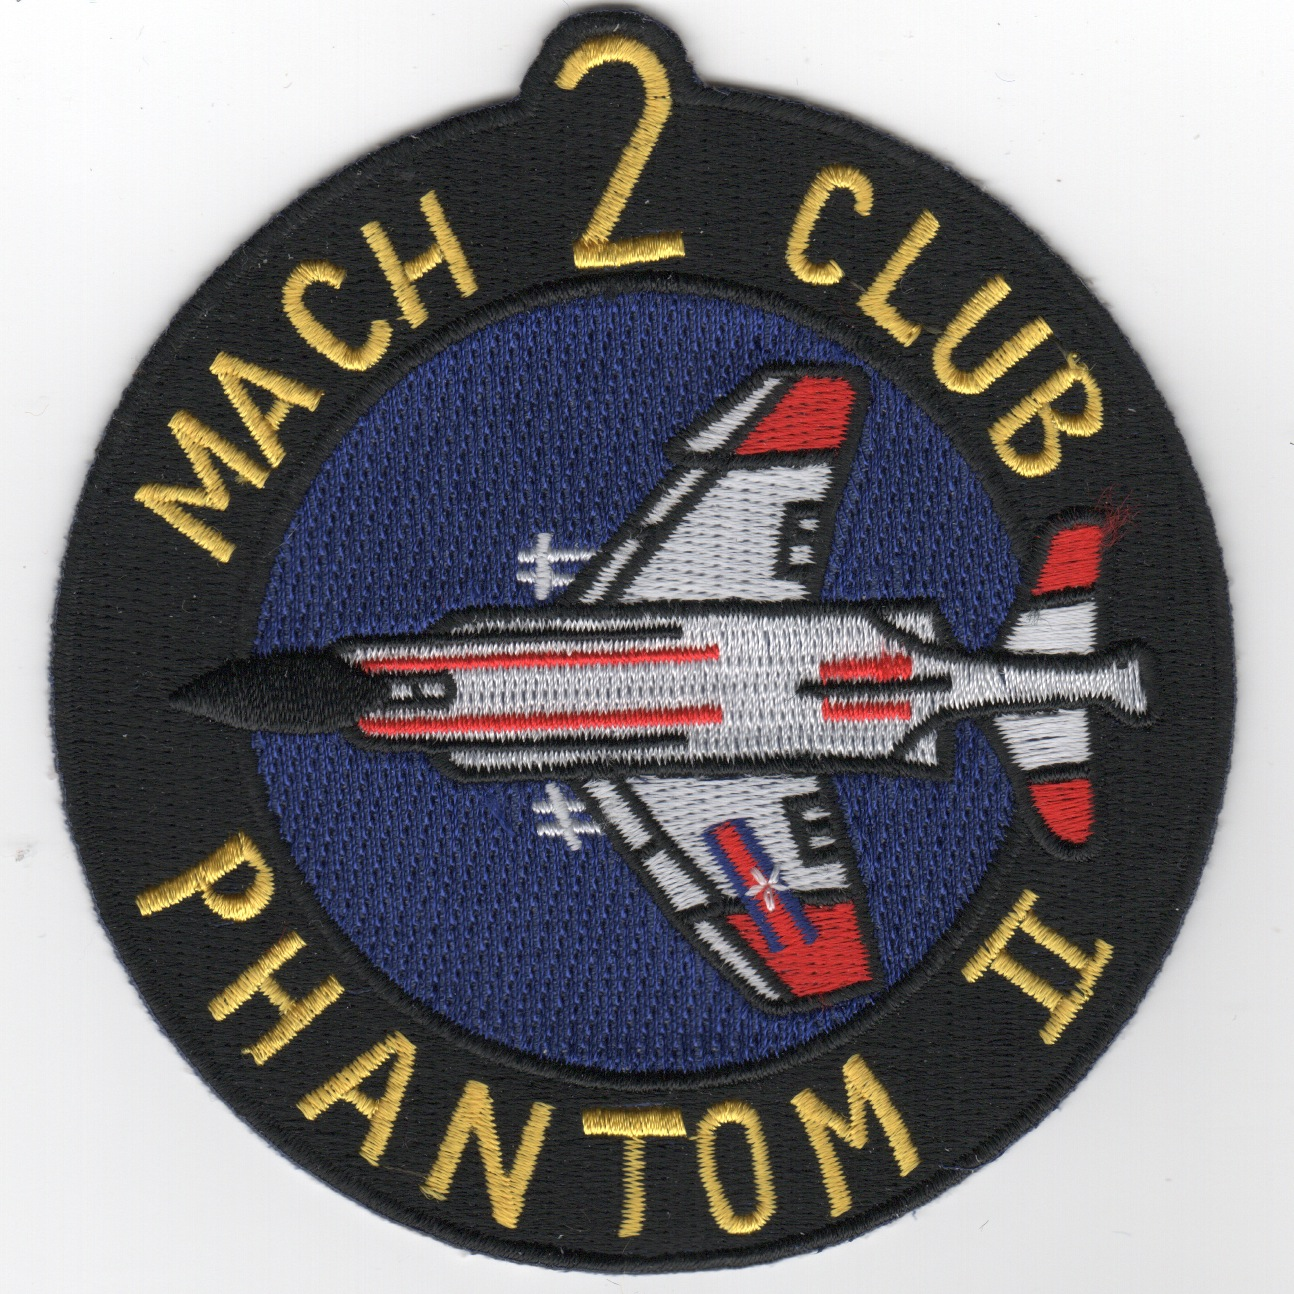 F-4 Phantom II 'MACH 2 Club' Patch